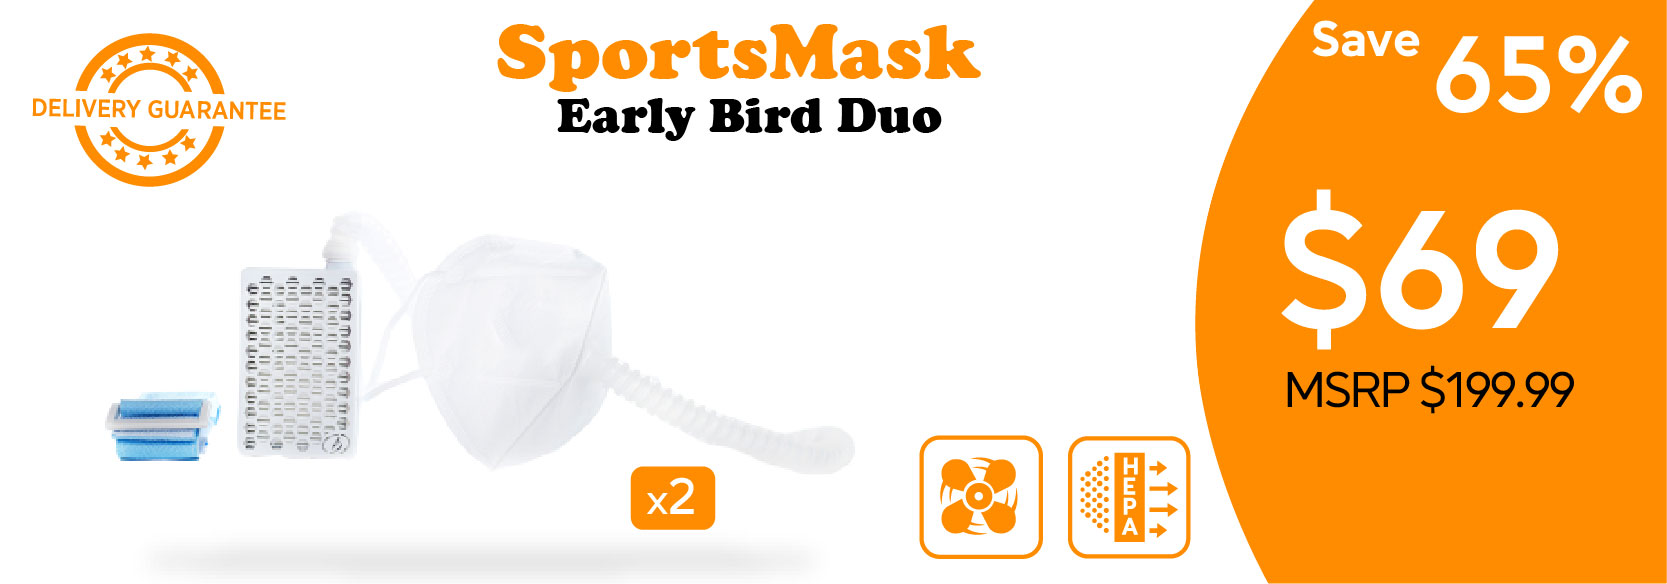 perk posters_Sports Mask Early Bird Duo